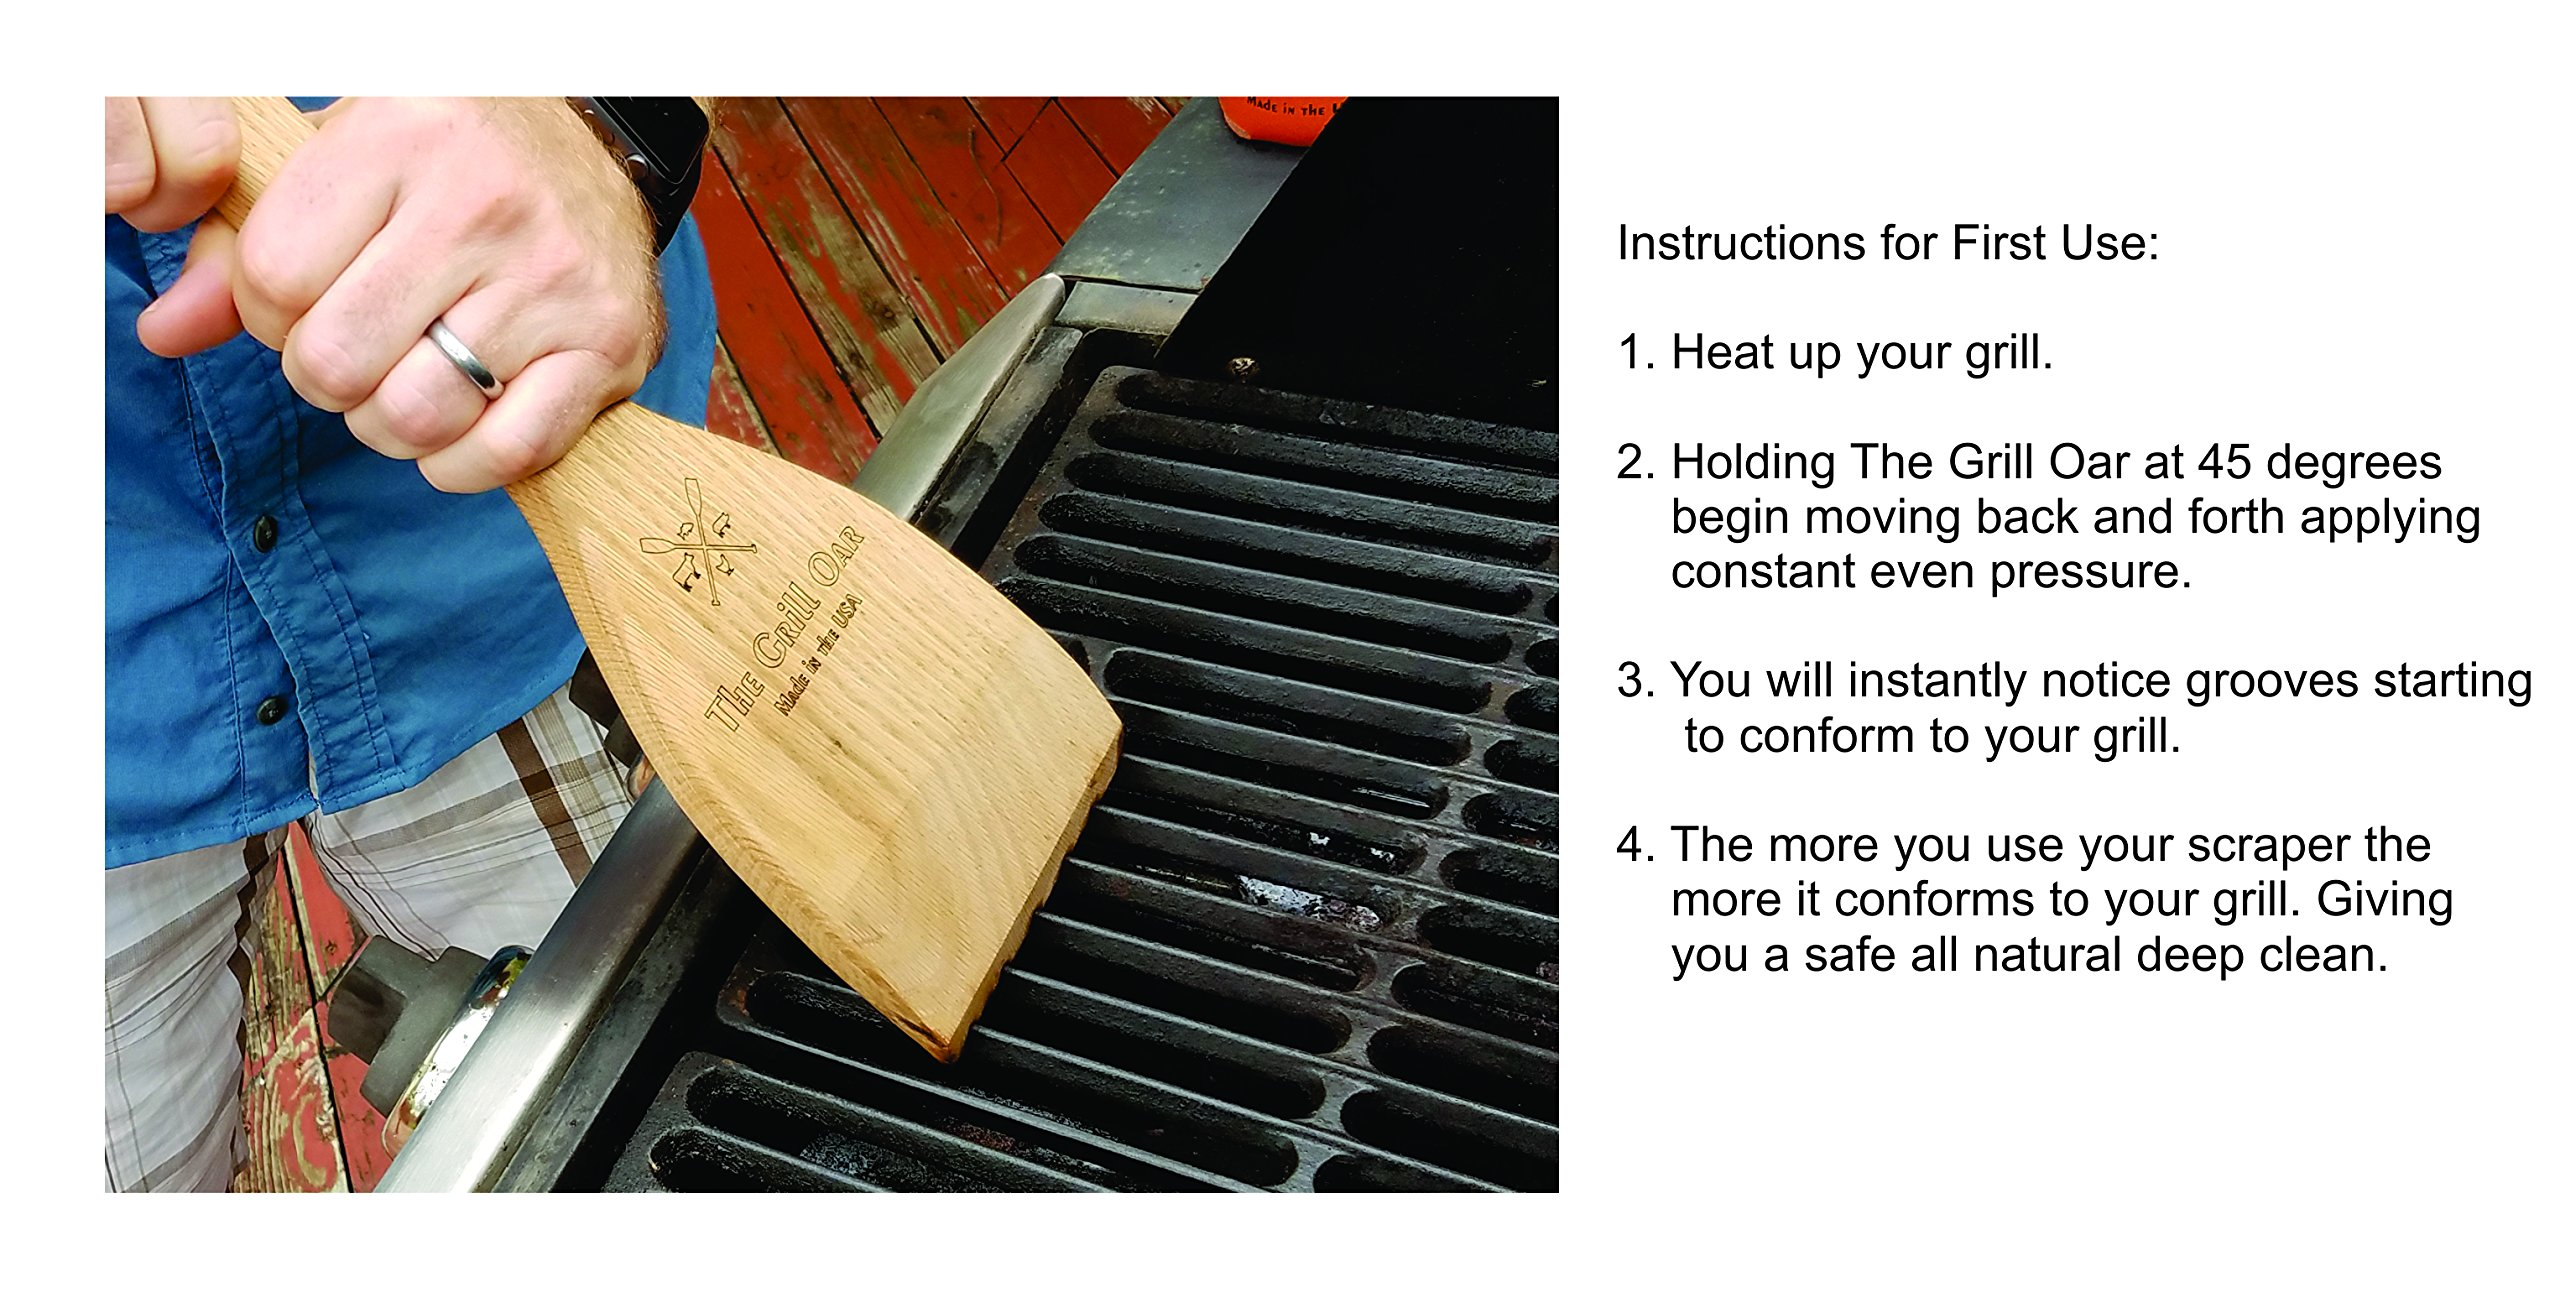 The Grill Oar - Wooden Grill Scraper and Cleaner, Premium Red Oak Wood, Cleans Top and Between Grates, Safe Replacement for Wire Bristle Brush, Made in The USA, Free Koozie Included! by Simply Better (Image #3)